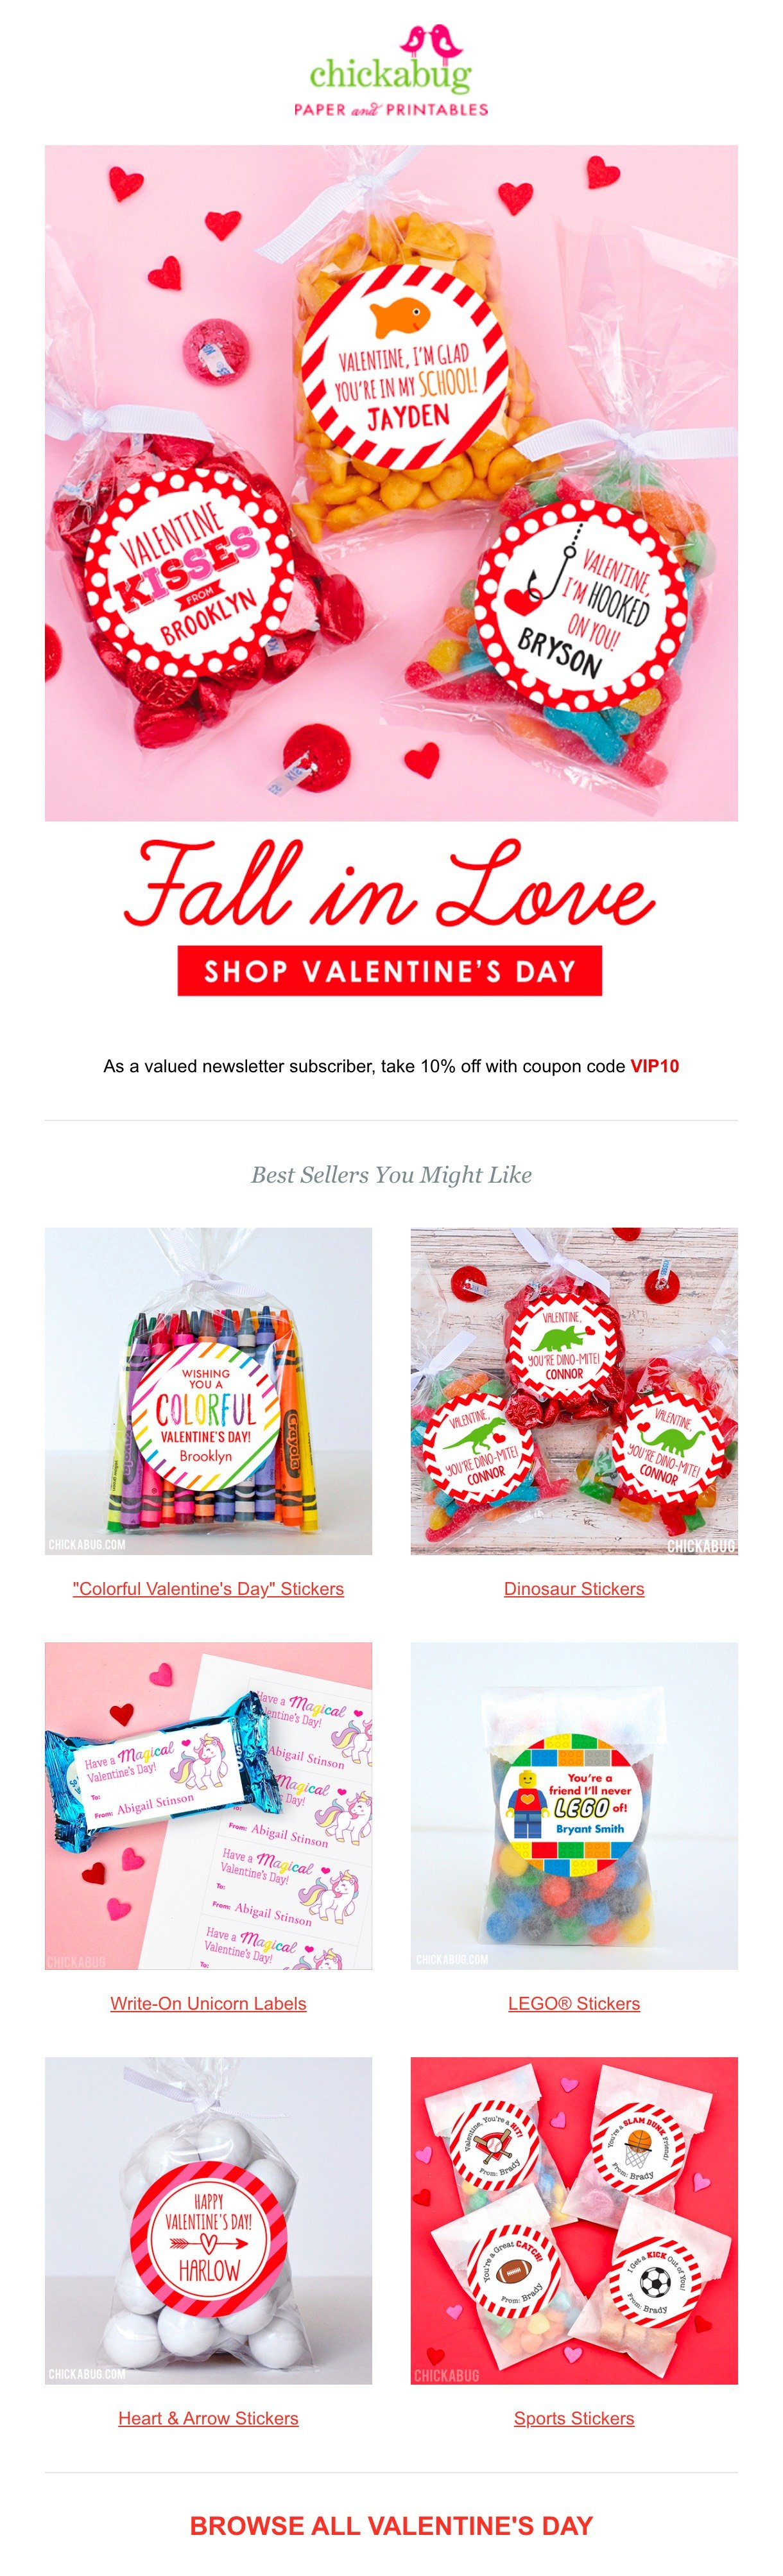 chickabug colorful valentines day newsletter